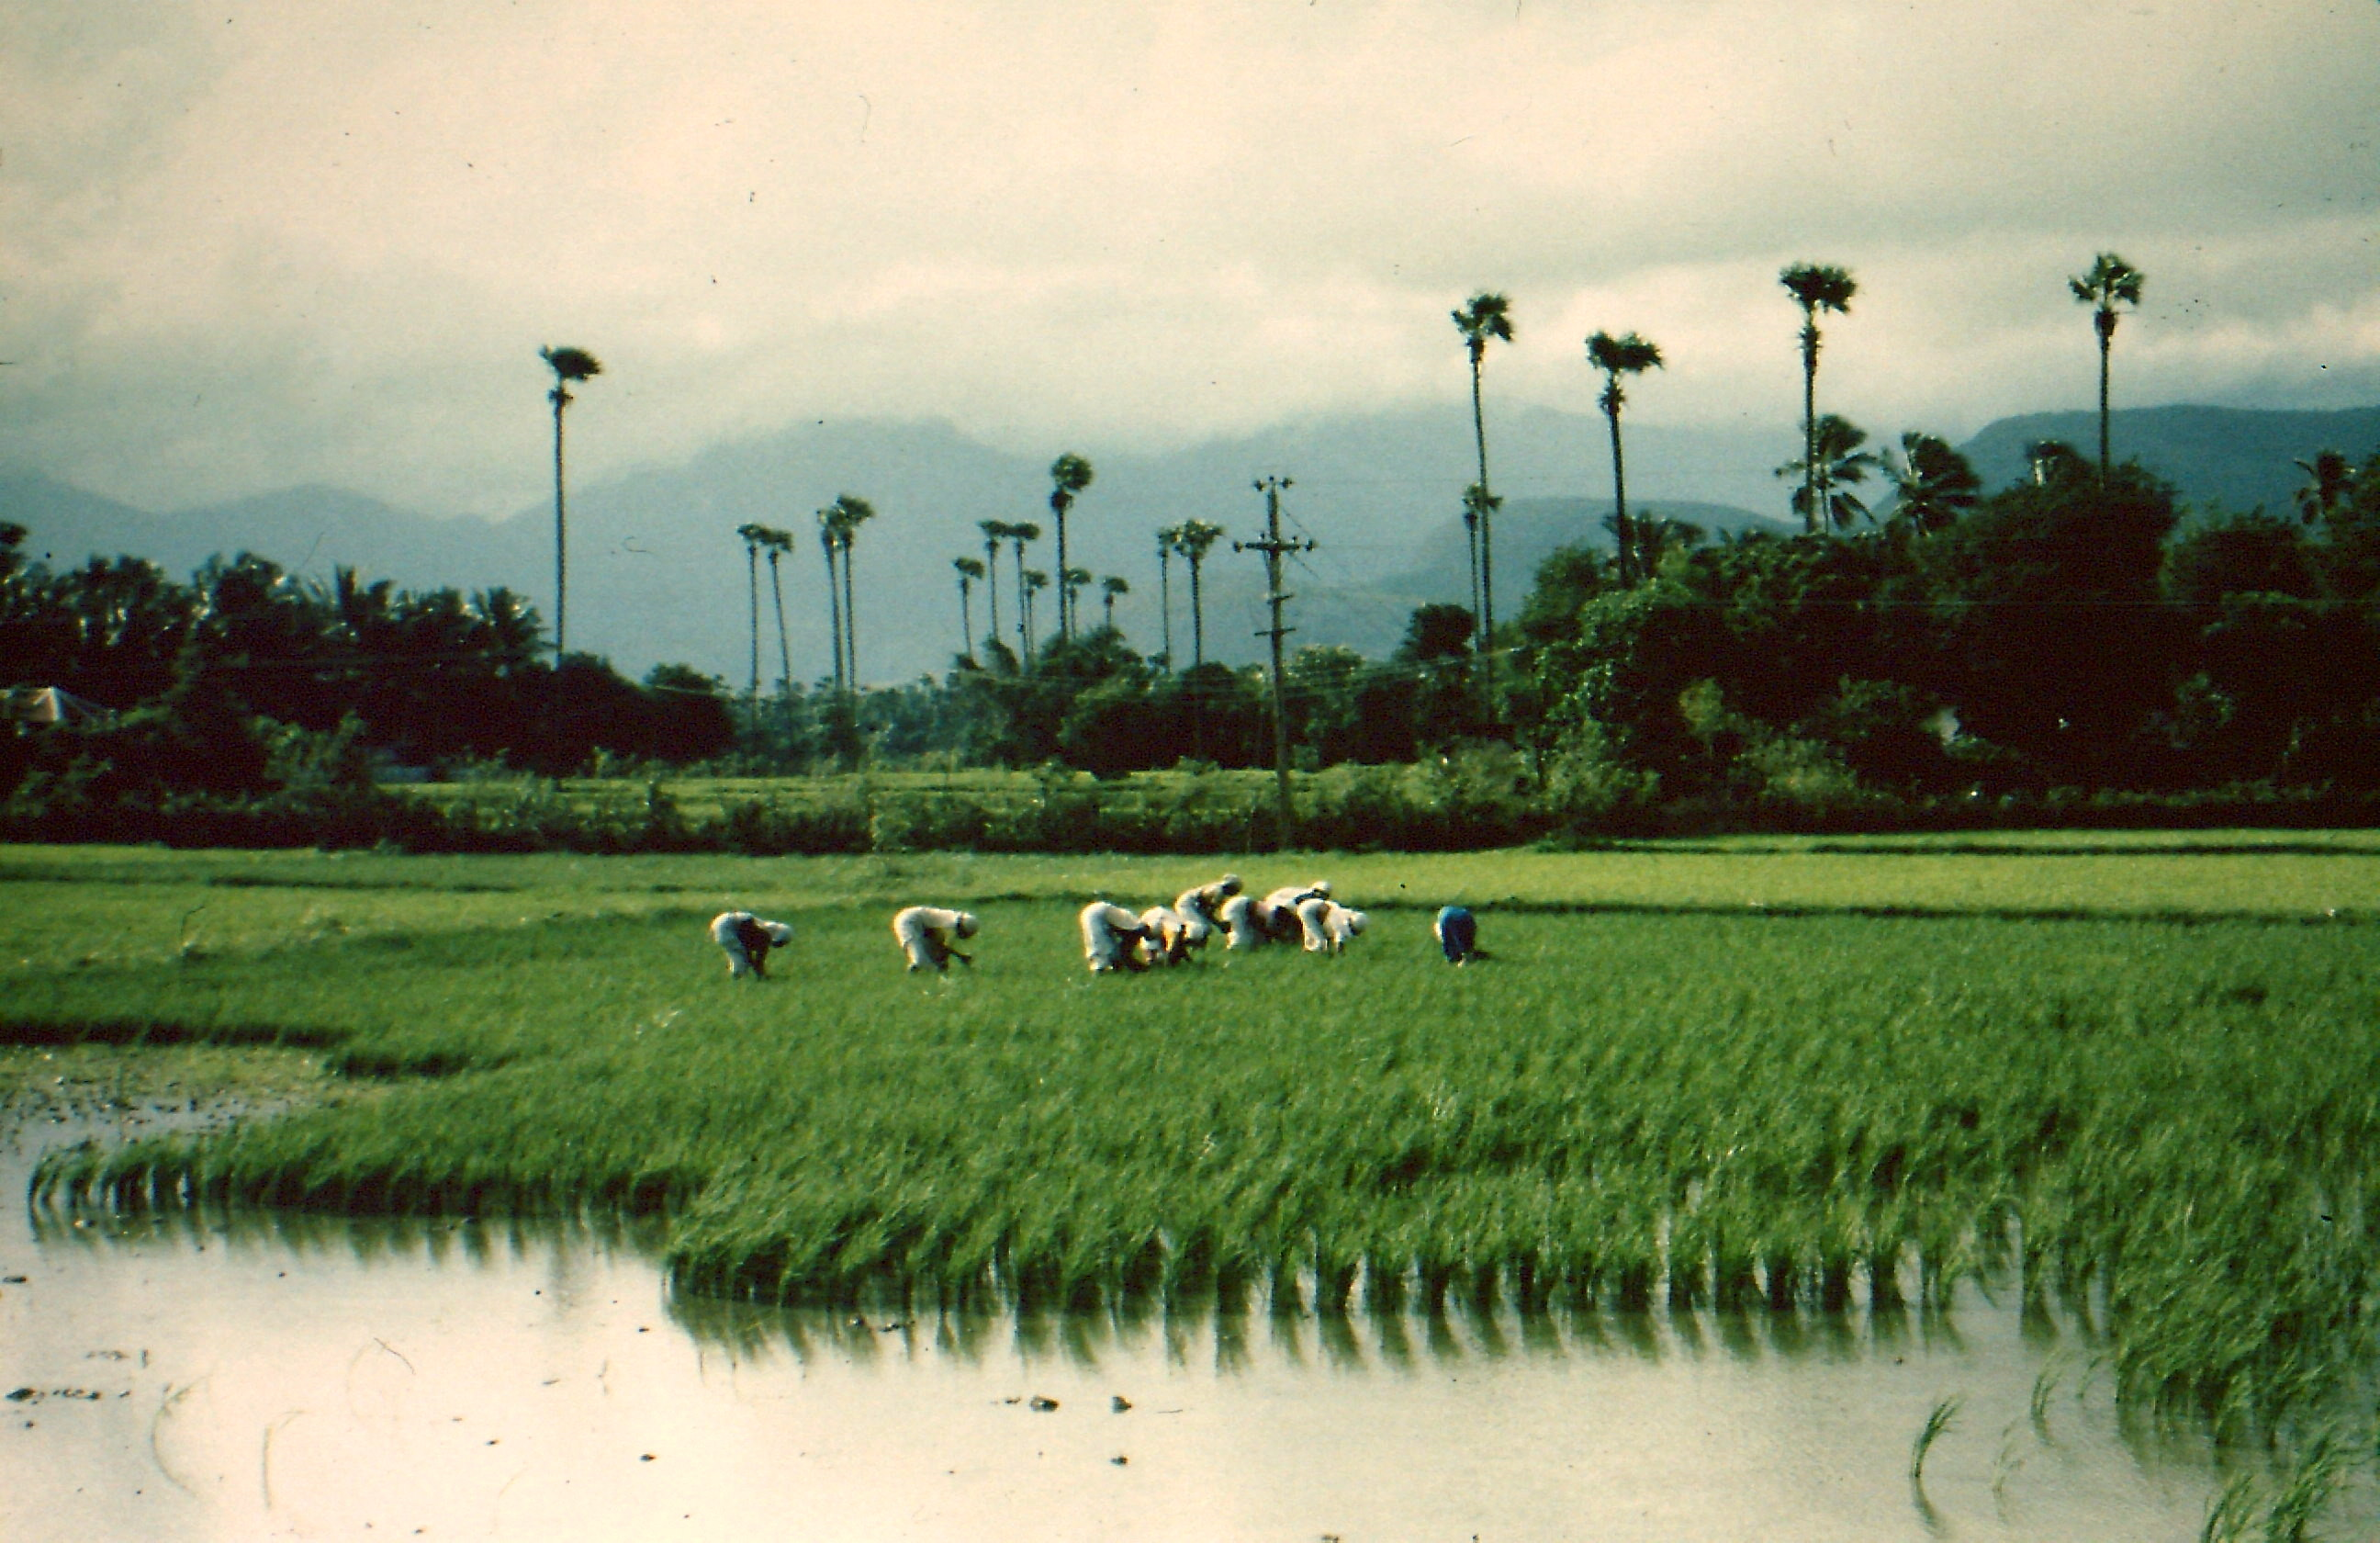 Rice farming in the 1970s, Kerala, India